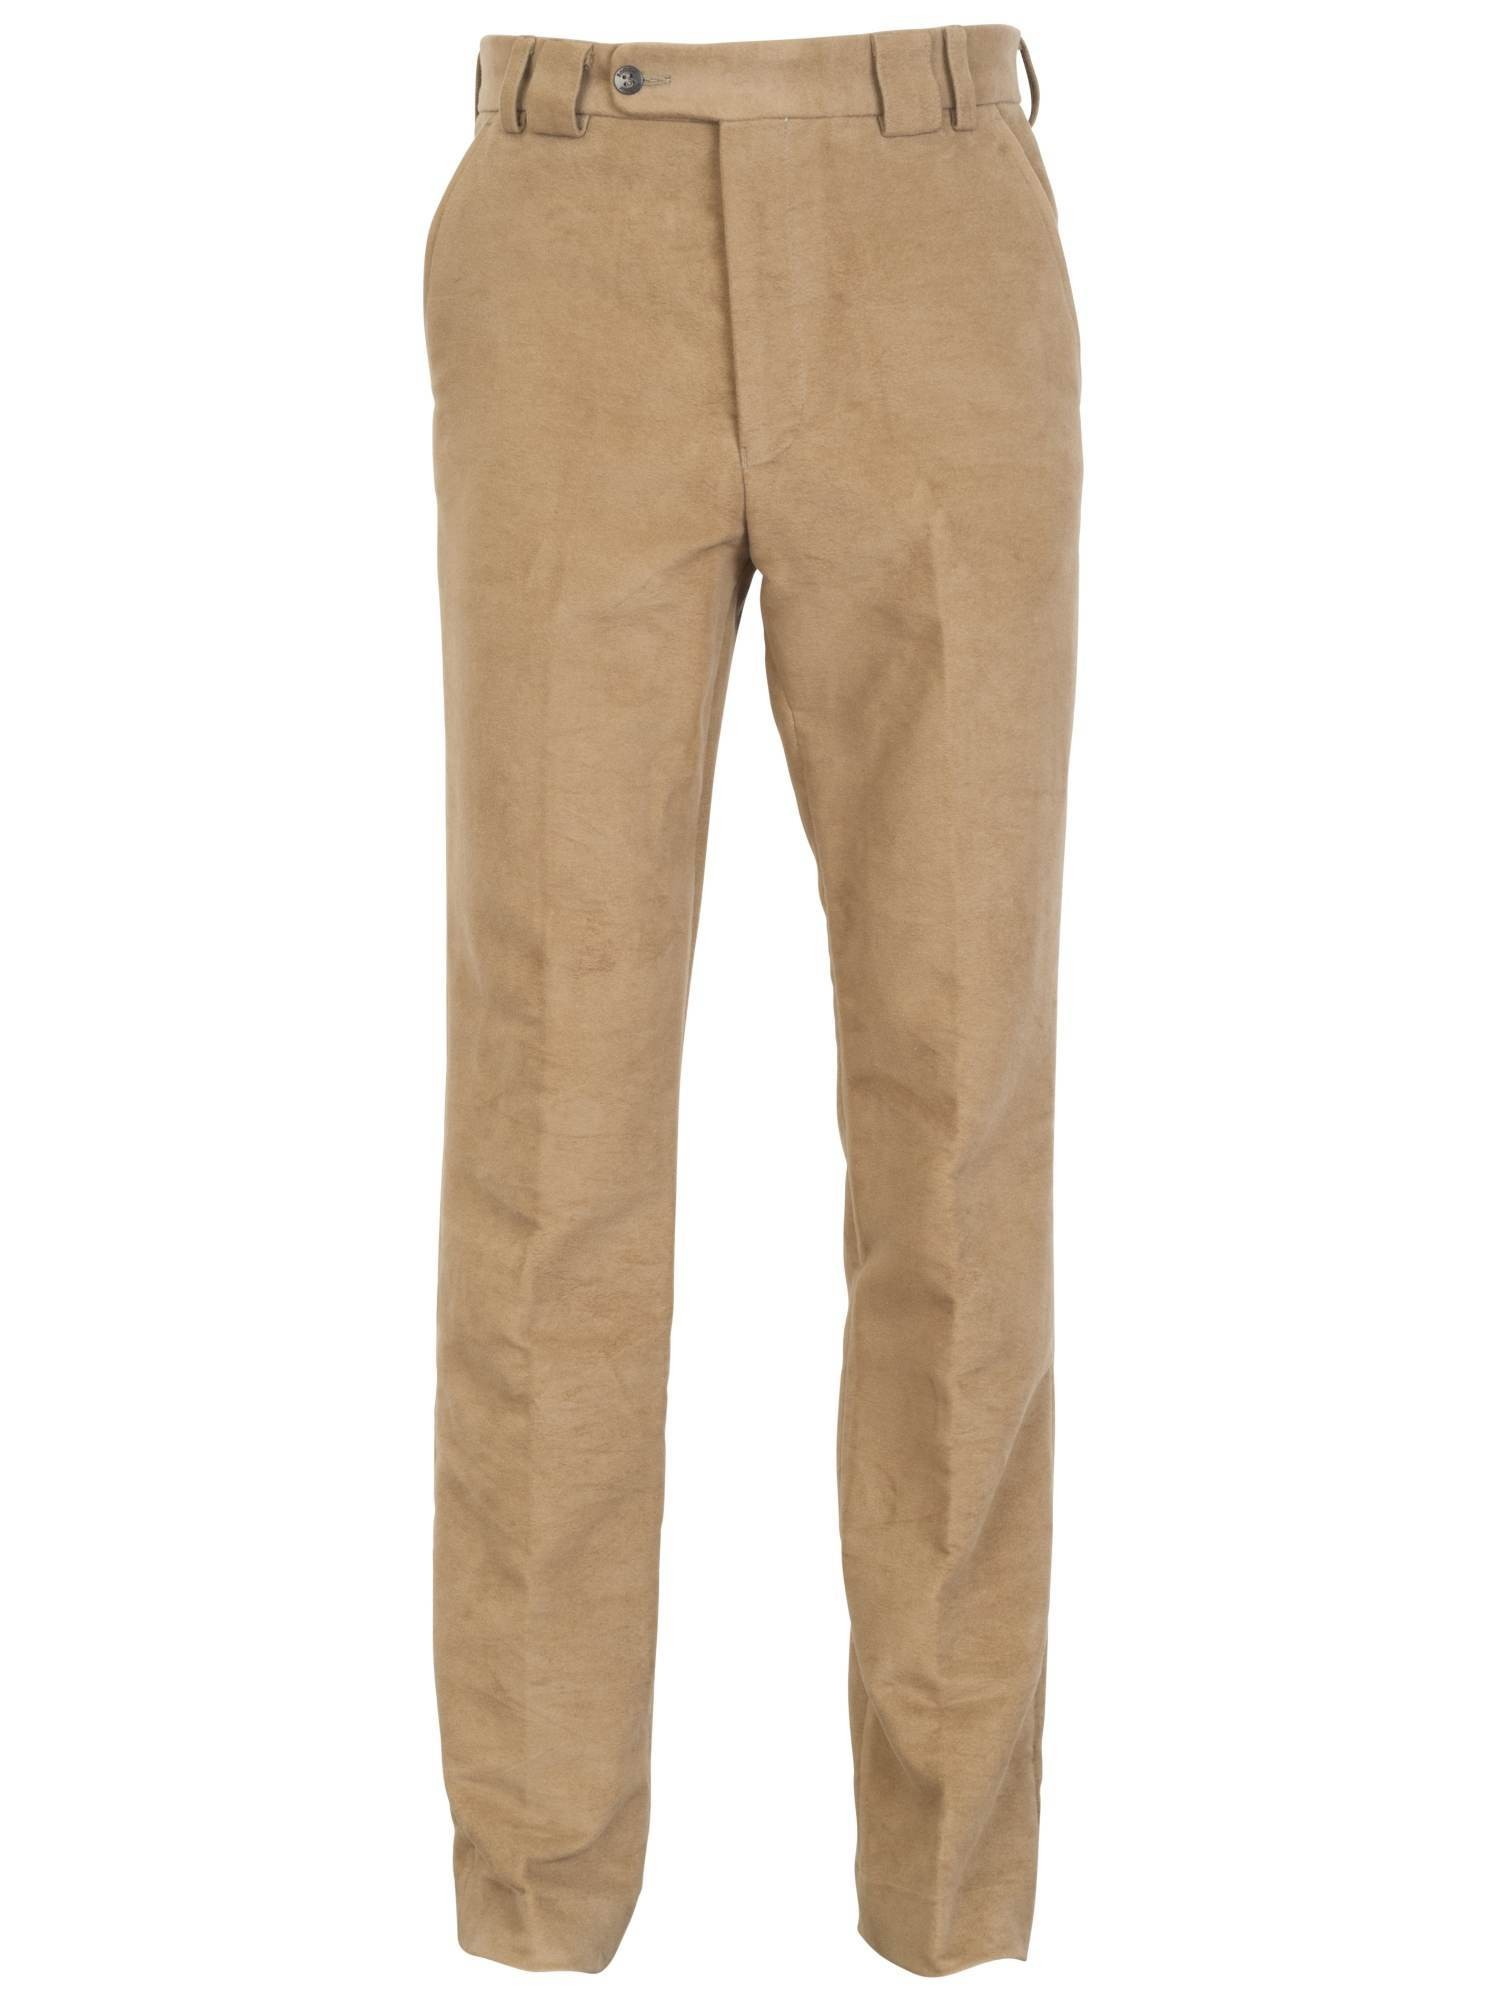 Barbour Traditional Fit Moleskin Mens Trousers Lovat